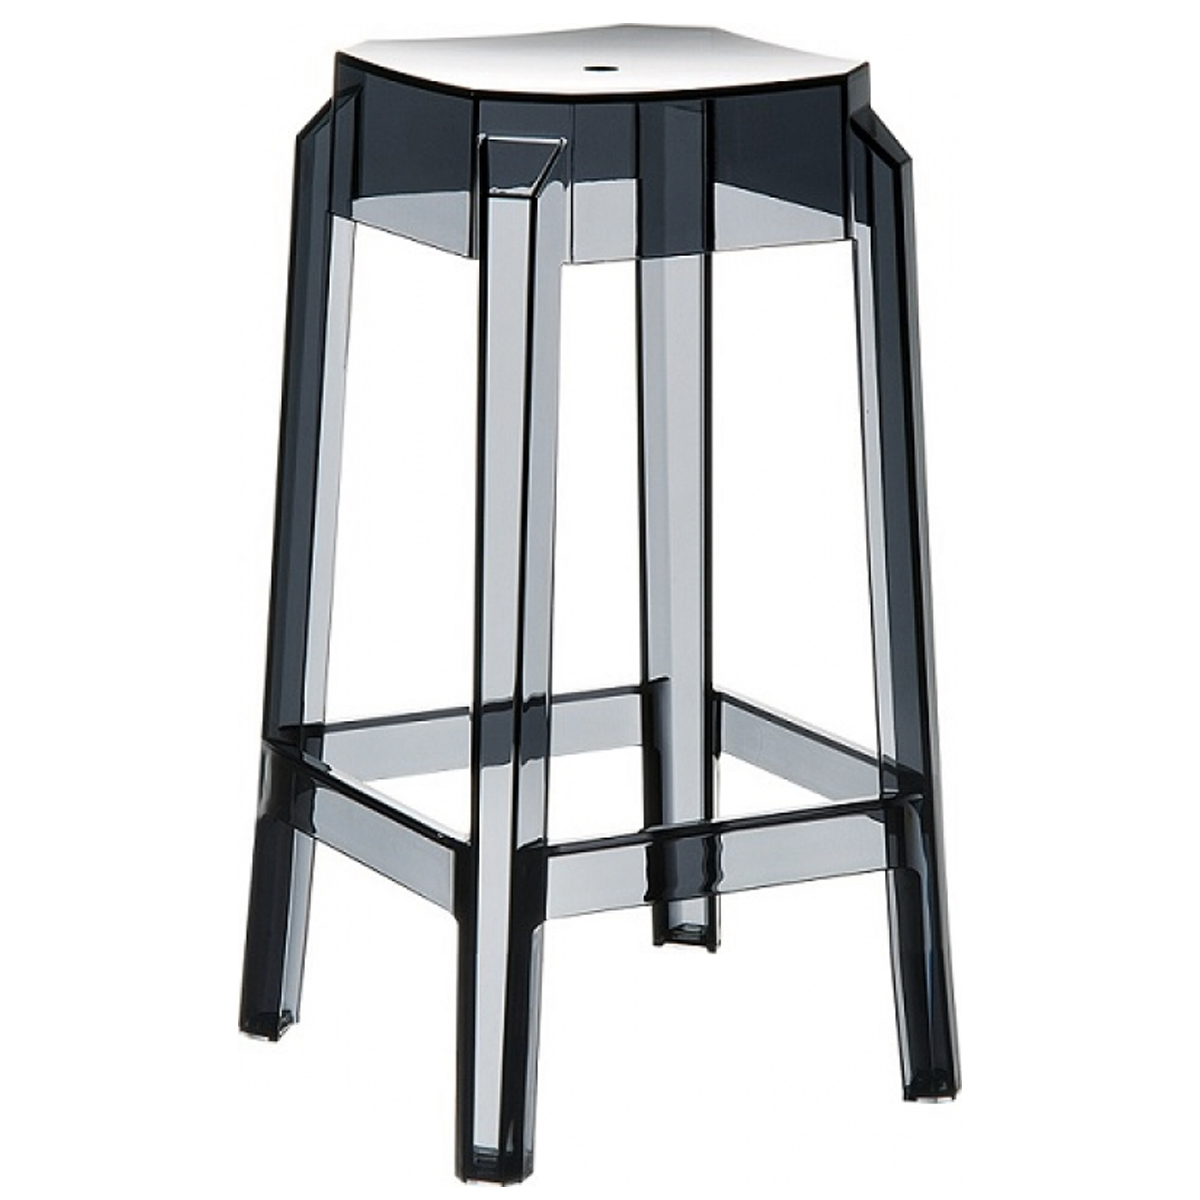 NEO 9E Perspex Stool For Cafeteria